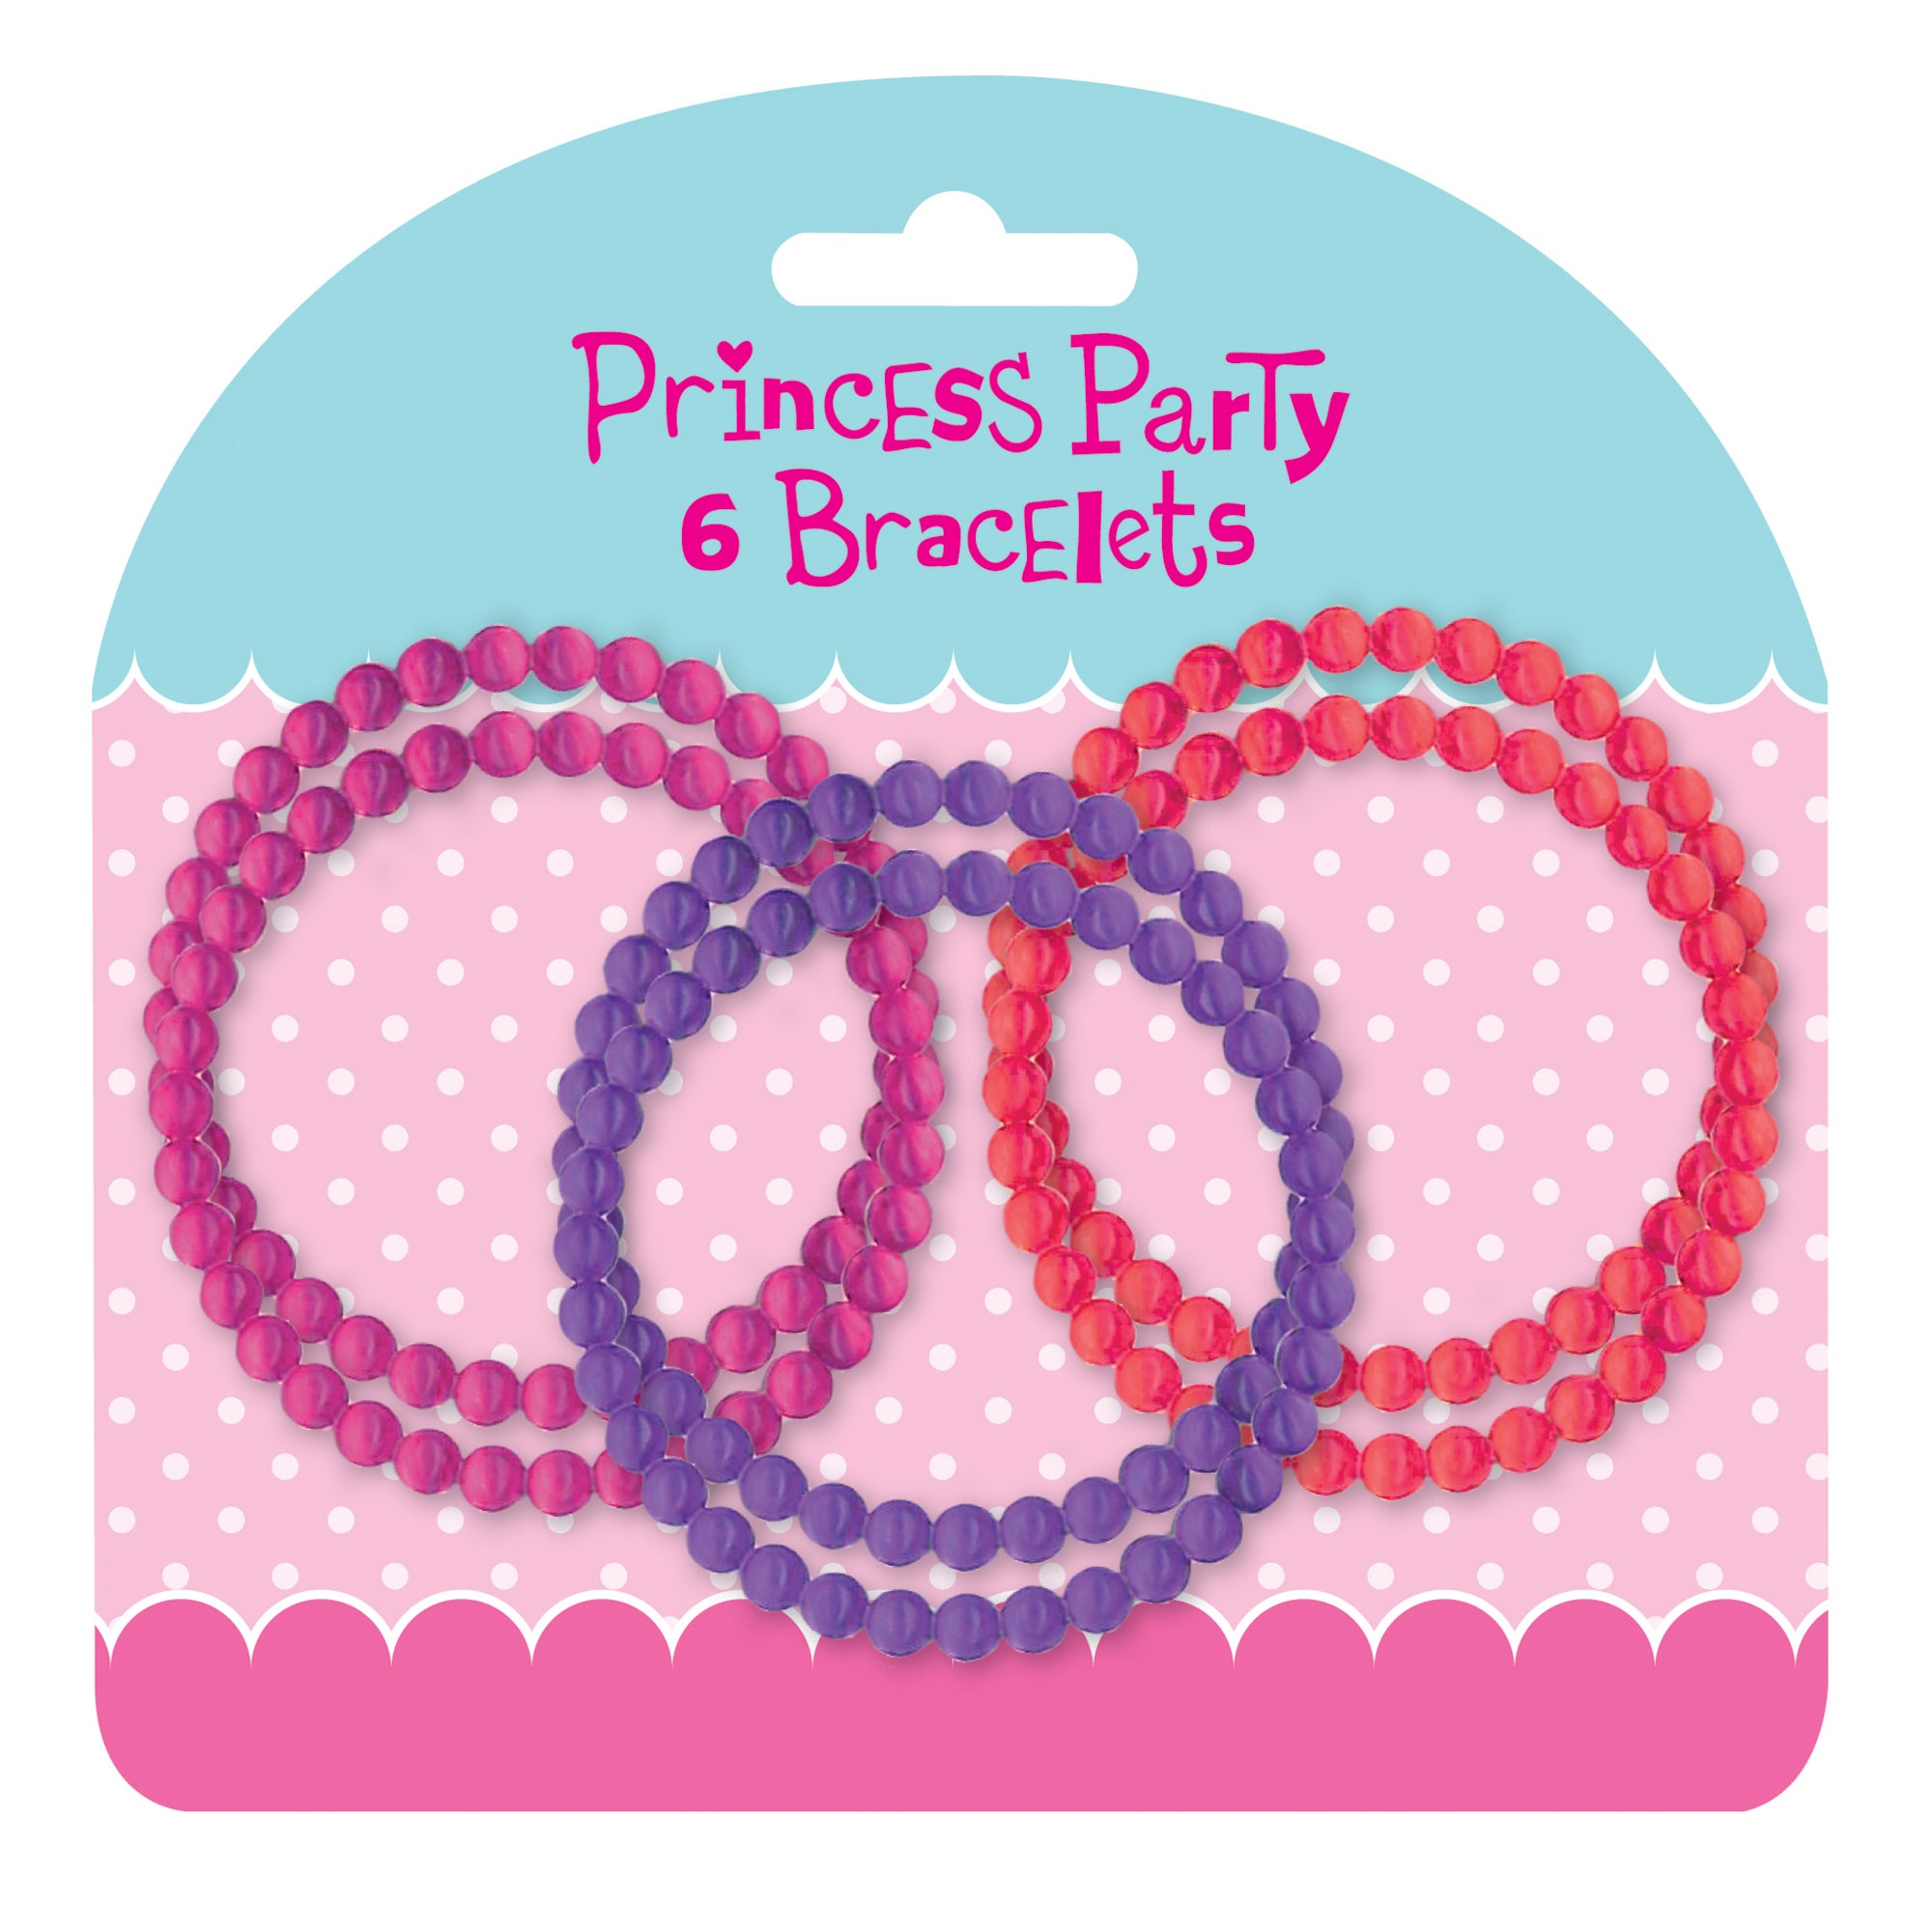 Princess Party Pack of 6 Plastic Bracelets